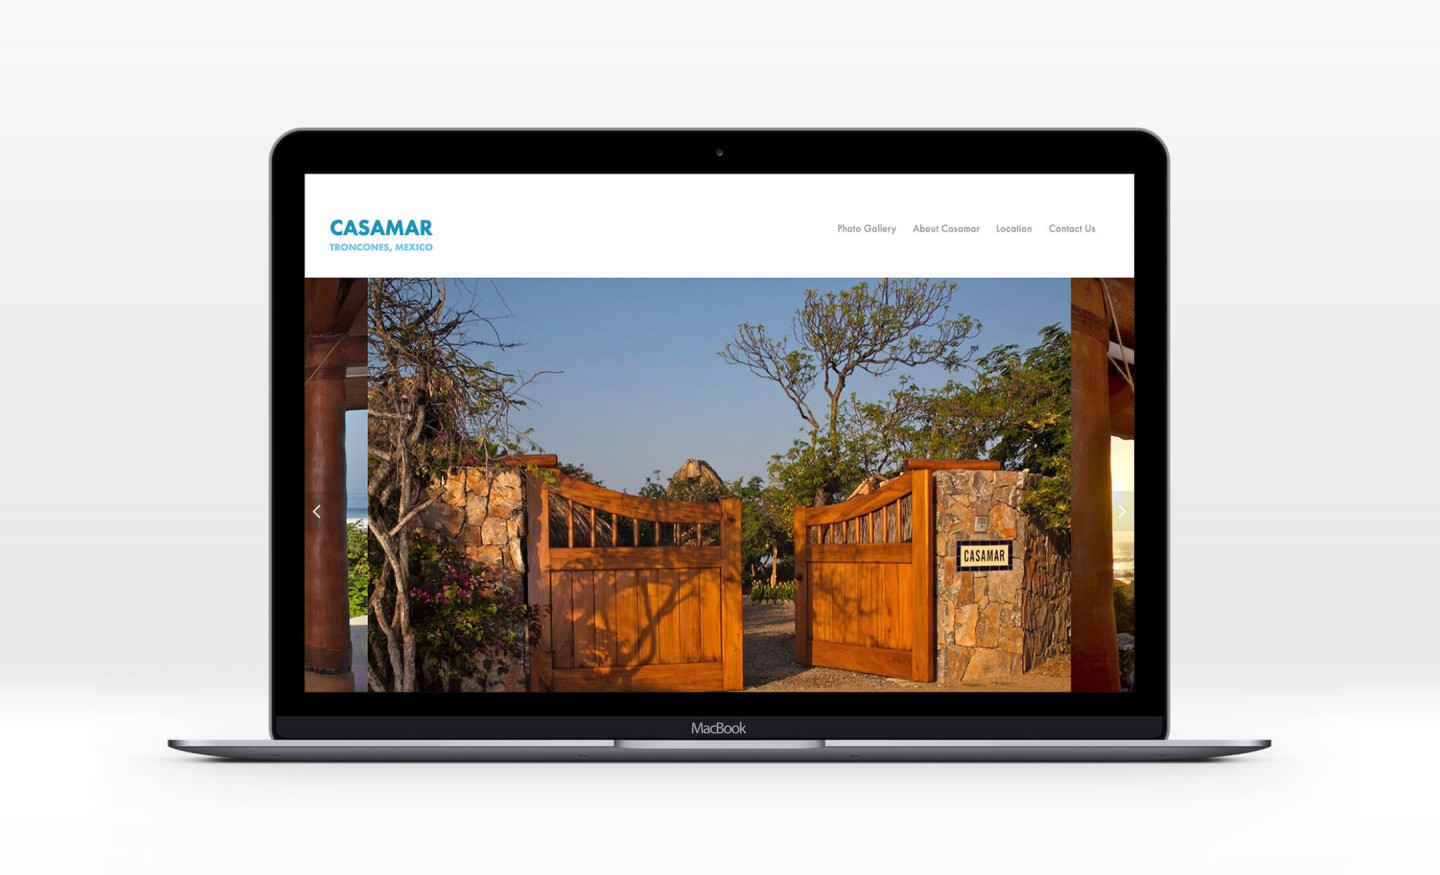 Casamar website laptop view